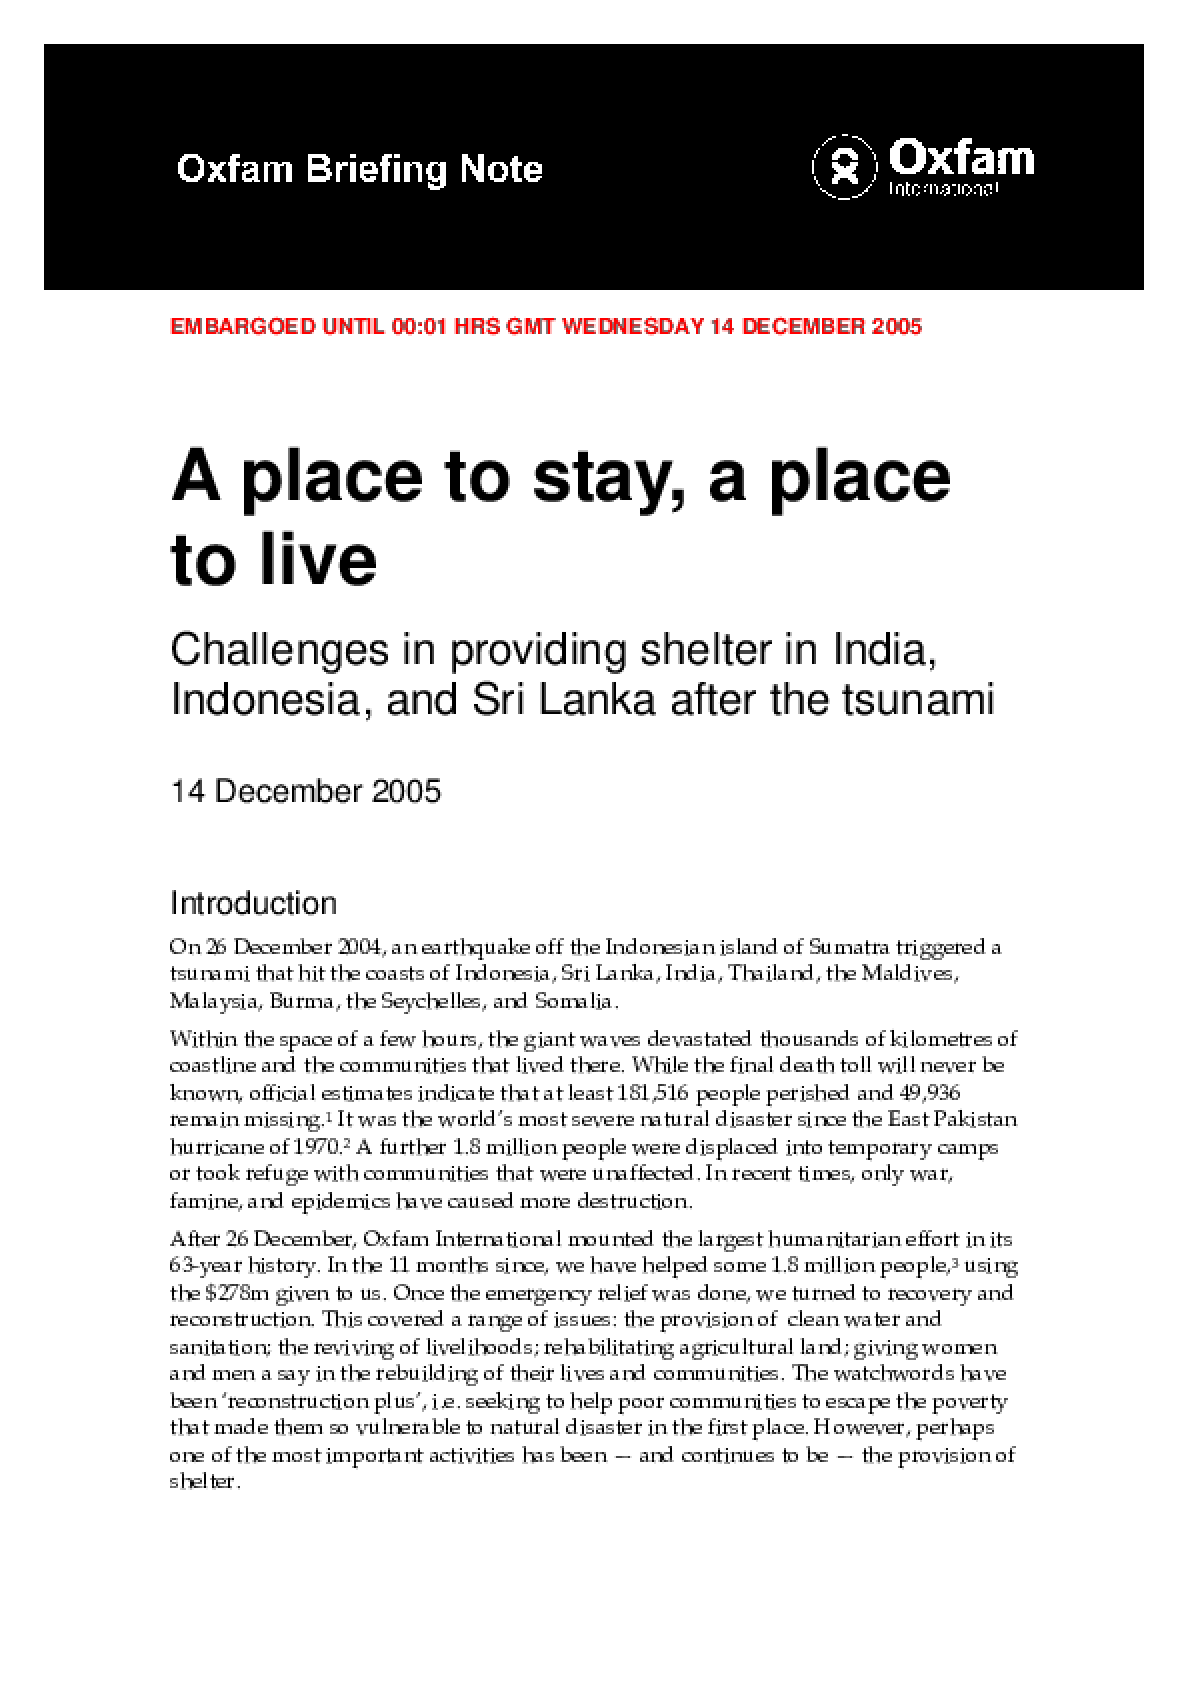 A Place to Stay, A Place to Live: Challenges in providing shelter in India, Indonesia, and Sri Lanka after the tsunami